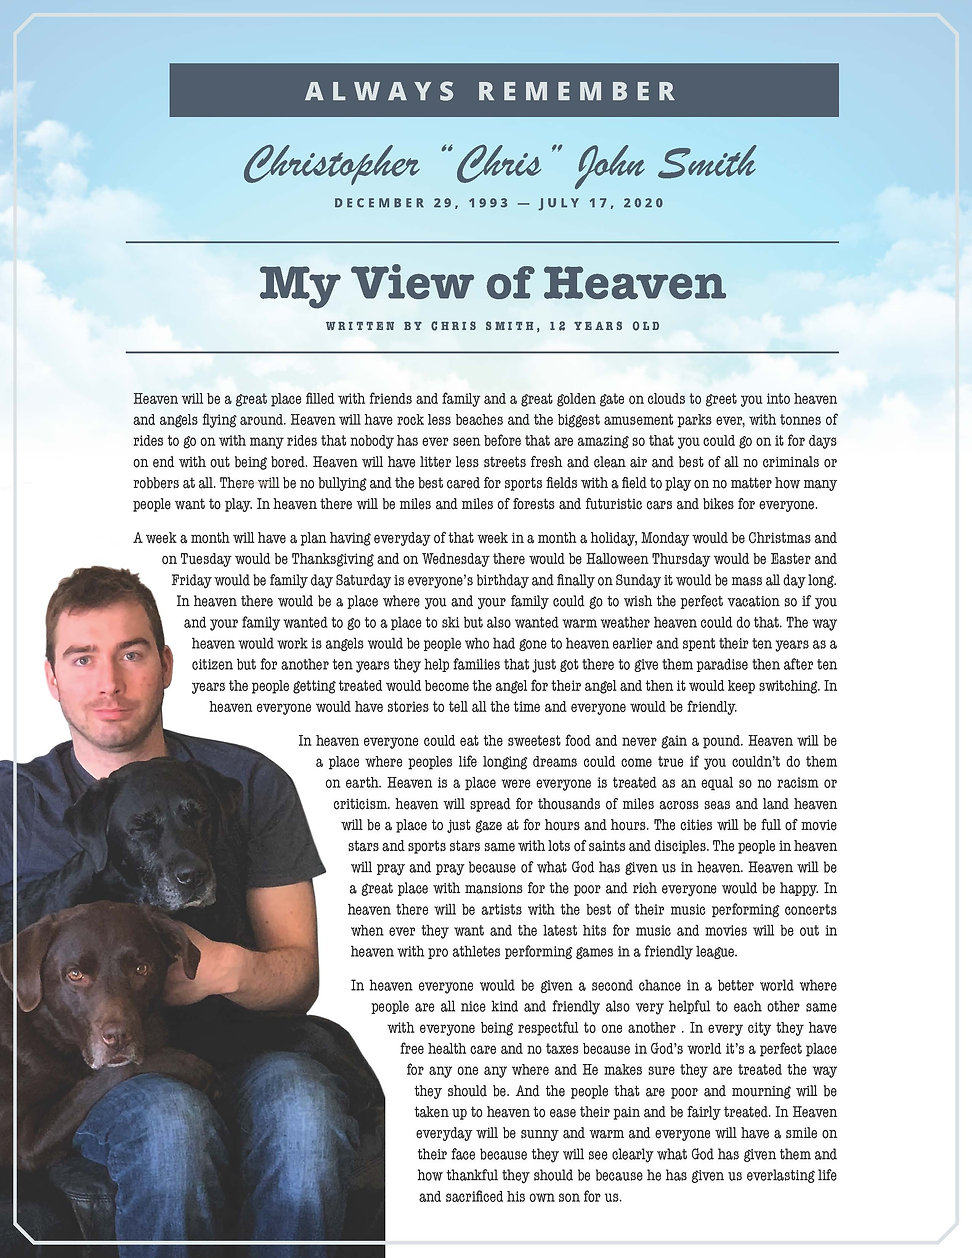 Chris Smith, aged 12, shares his view of heaven in a school essay.